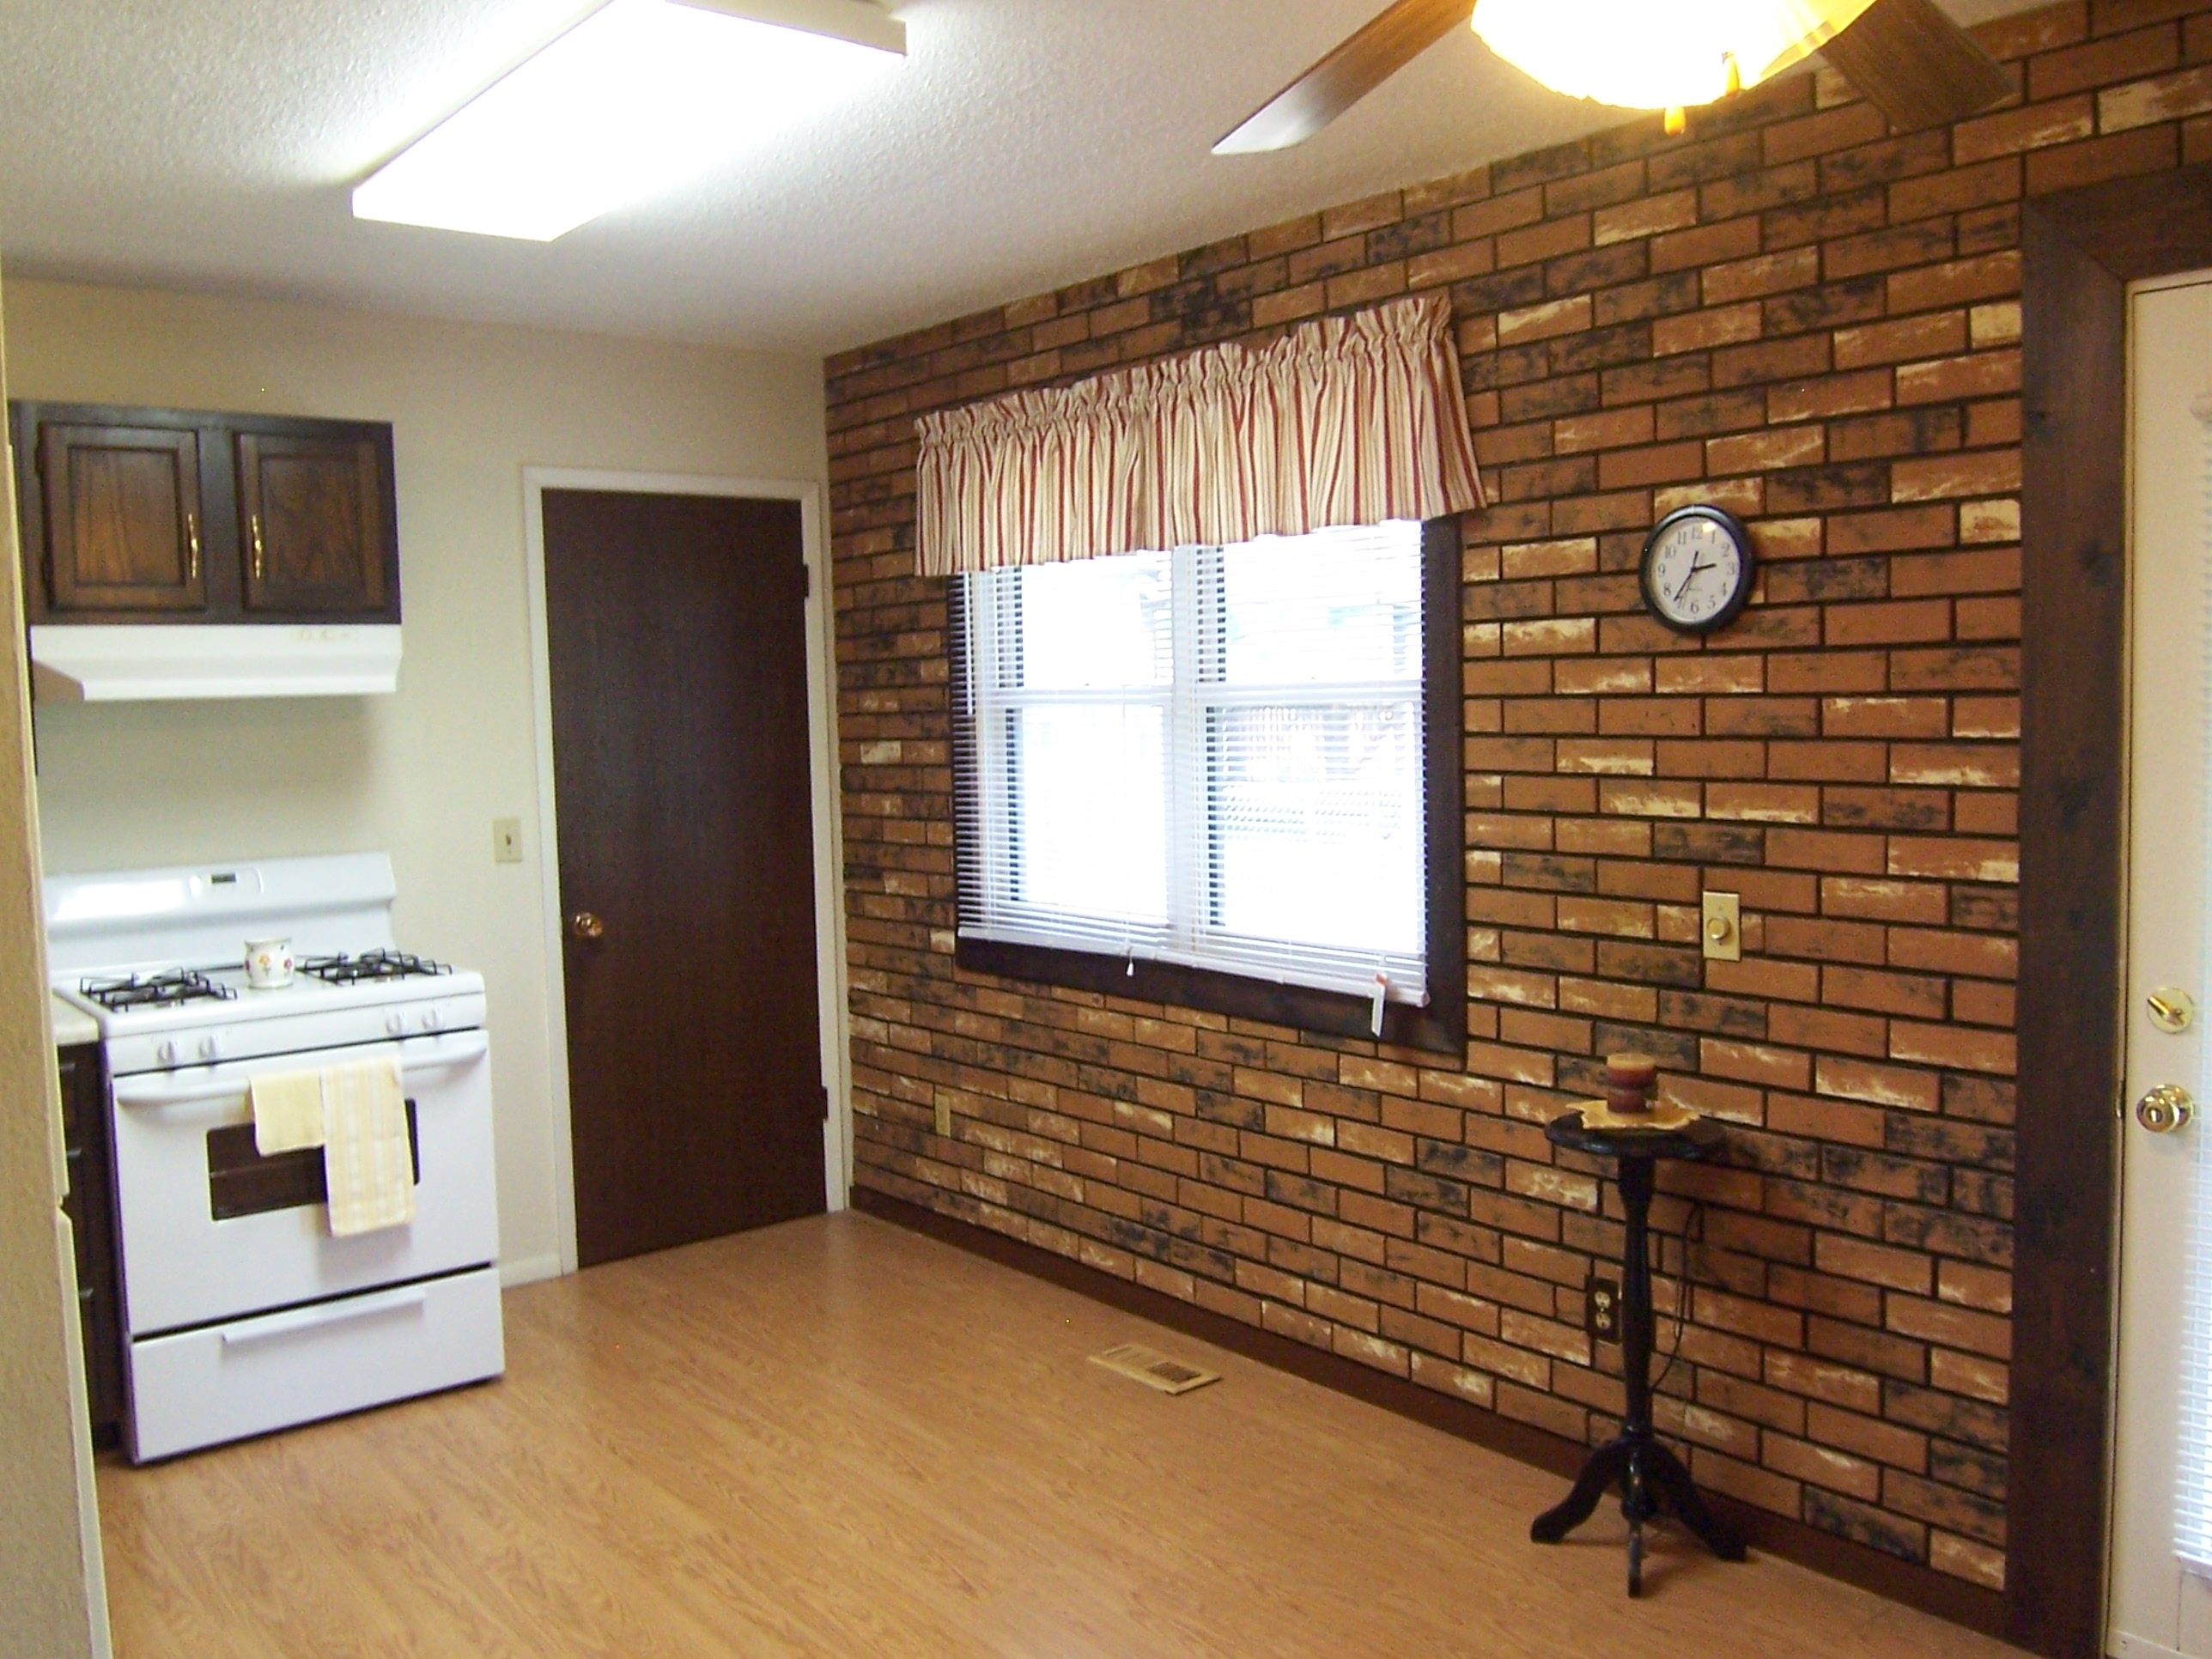 Exposed Brick Wall Ideas Home Design And Interior Decorating Regarding Recent Exposed Brick Wall Accents (View 7 of 15)